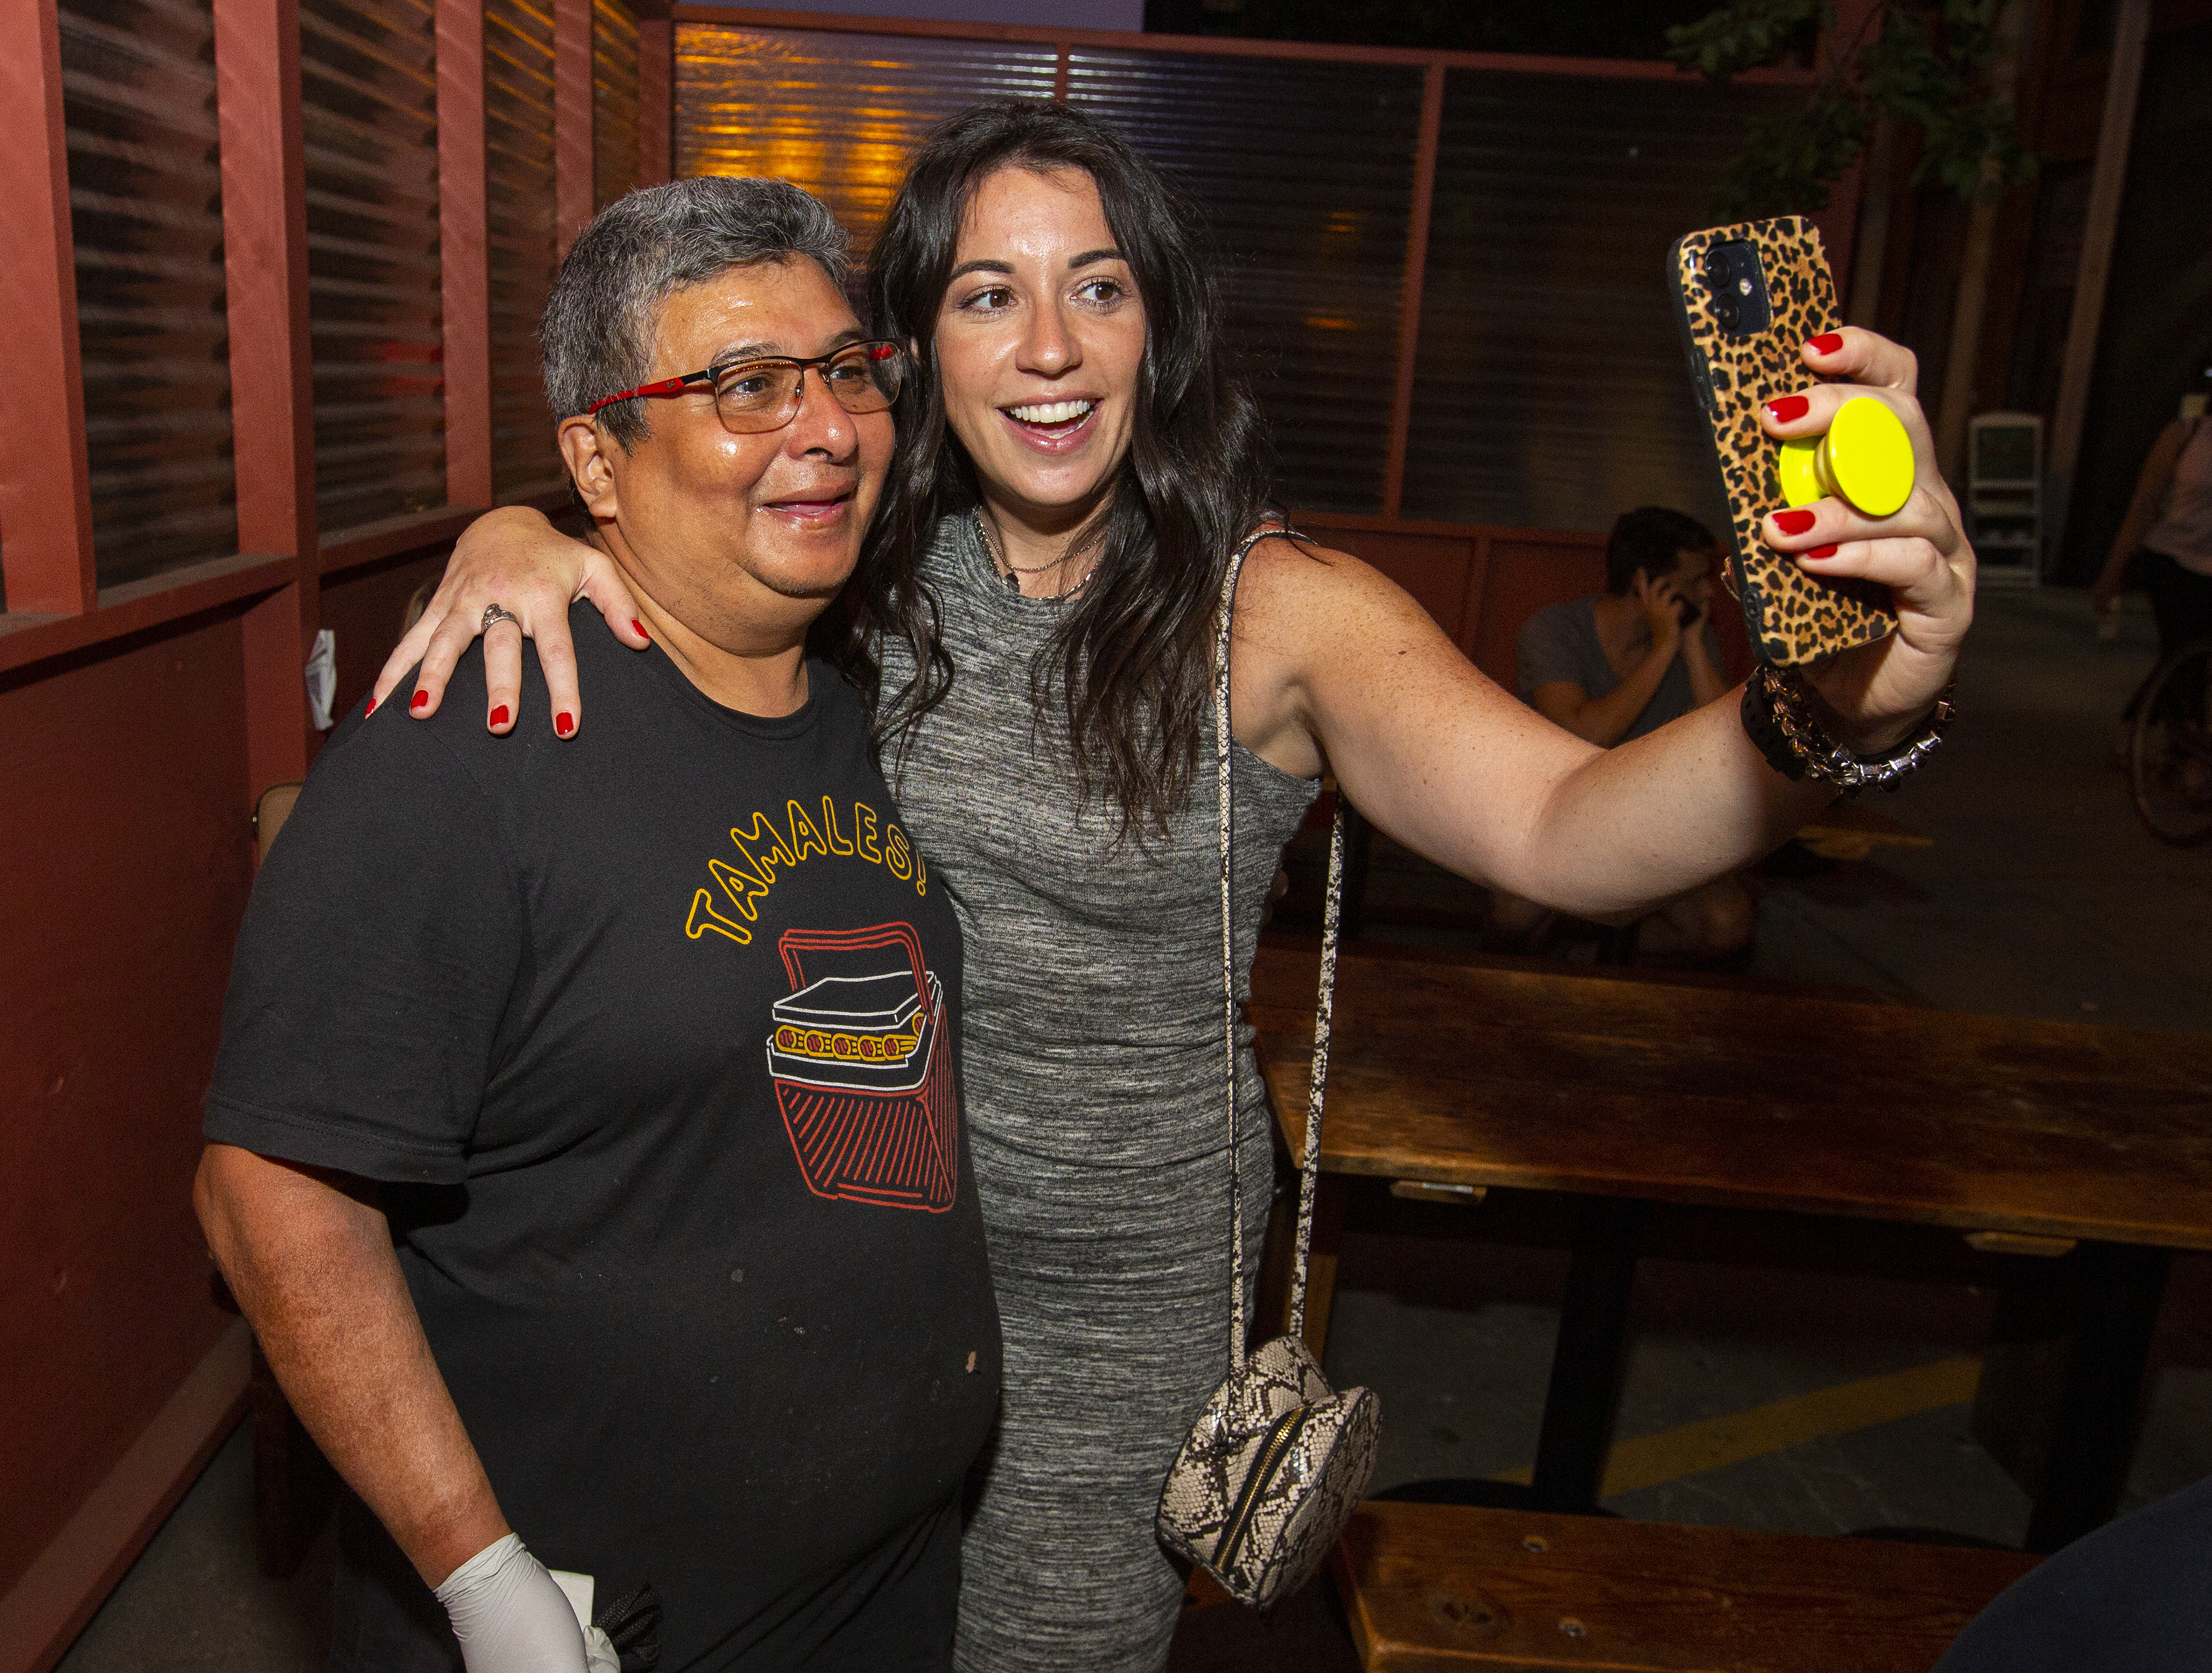 Two people standing up and taking a selfie.